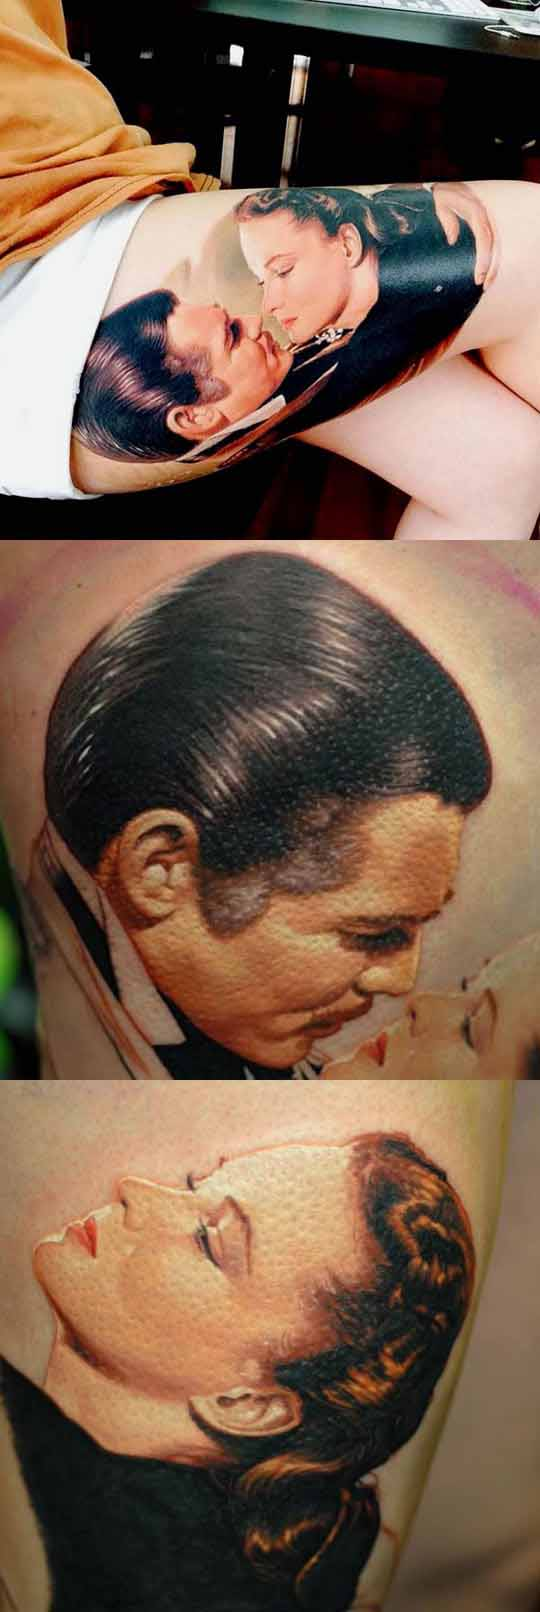 Now This Is A Mind-Blowing Tattoo